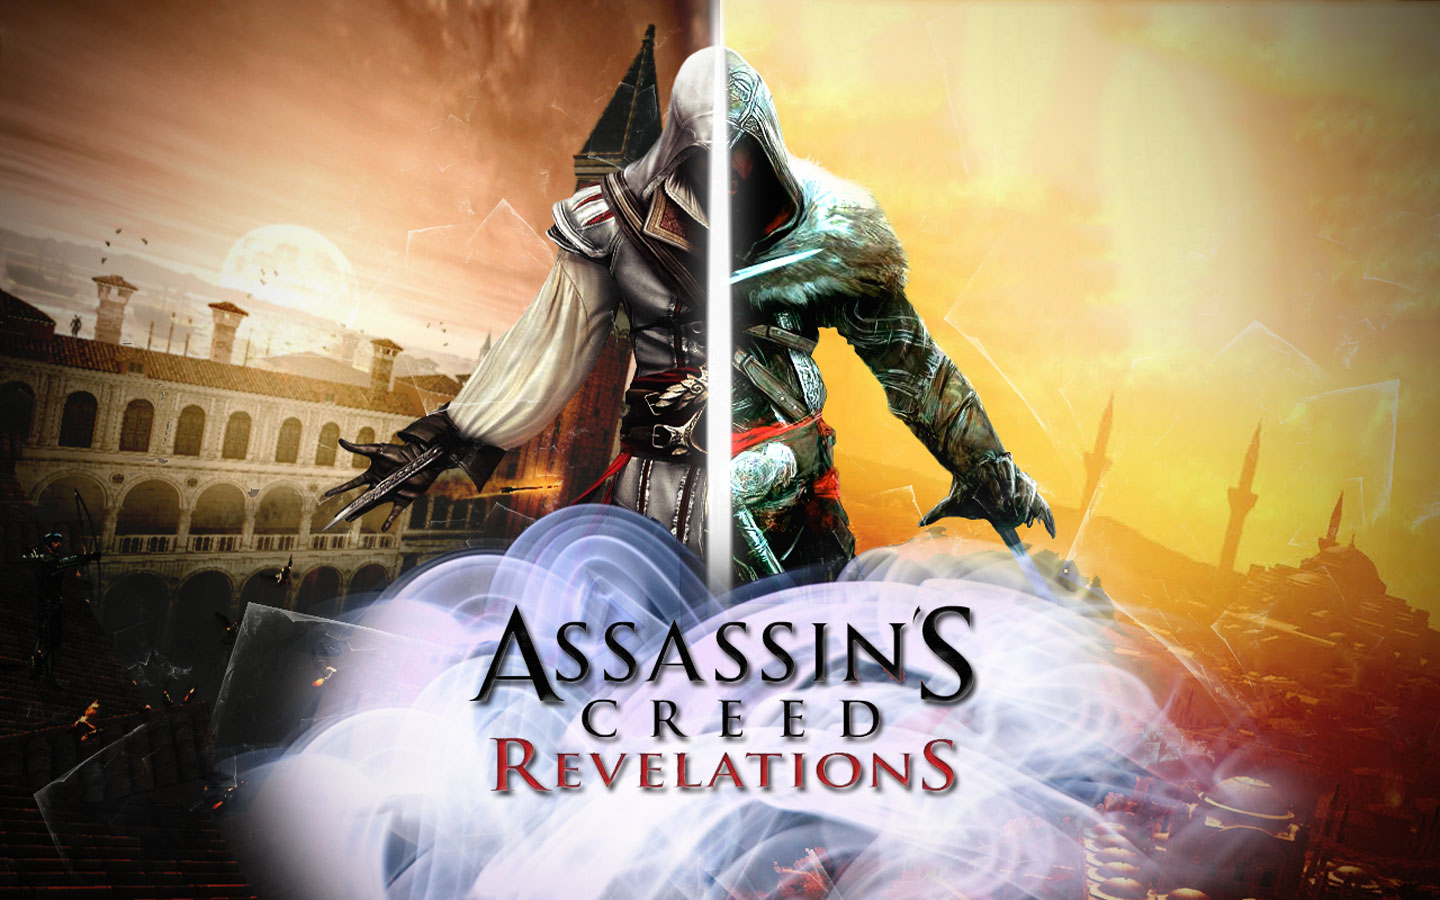 creed revelations HD wallpapers   Assassins Creed Revelations HD 1440x900